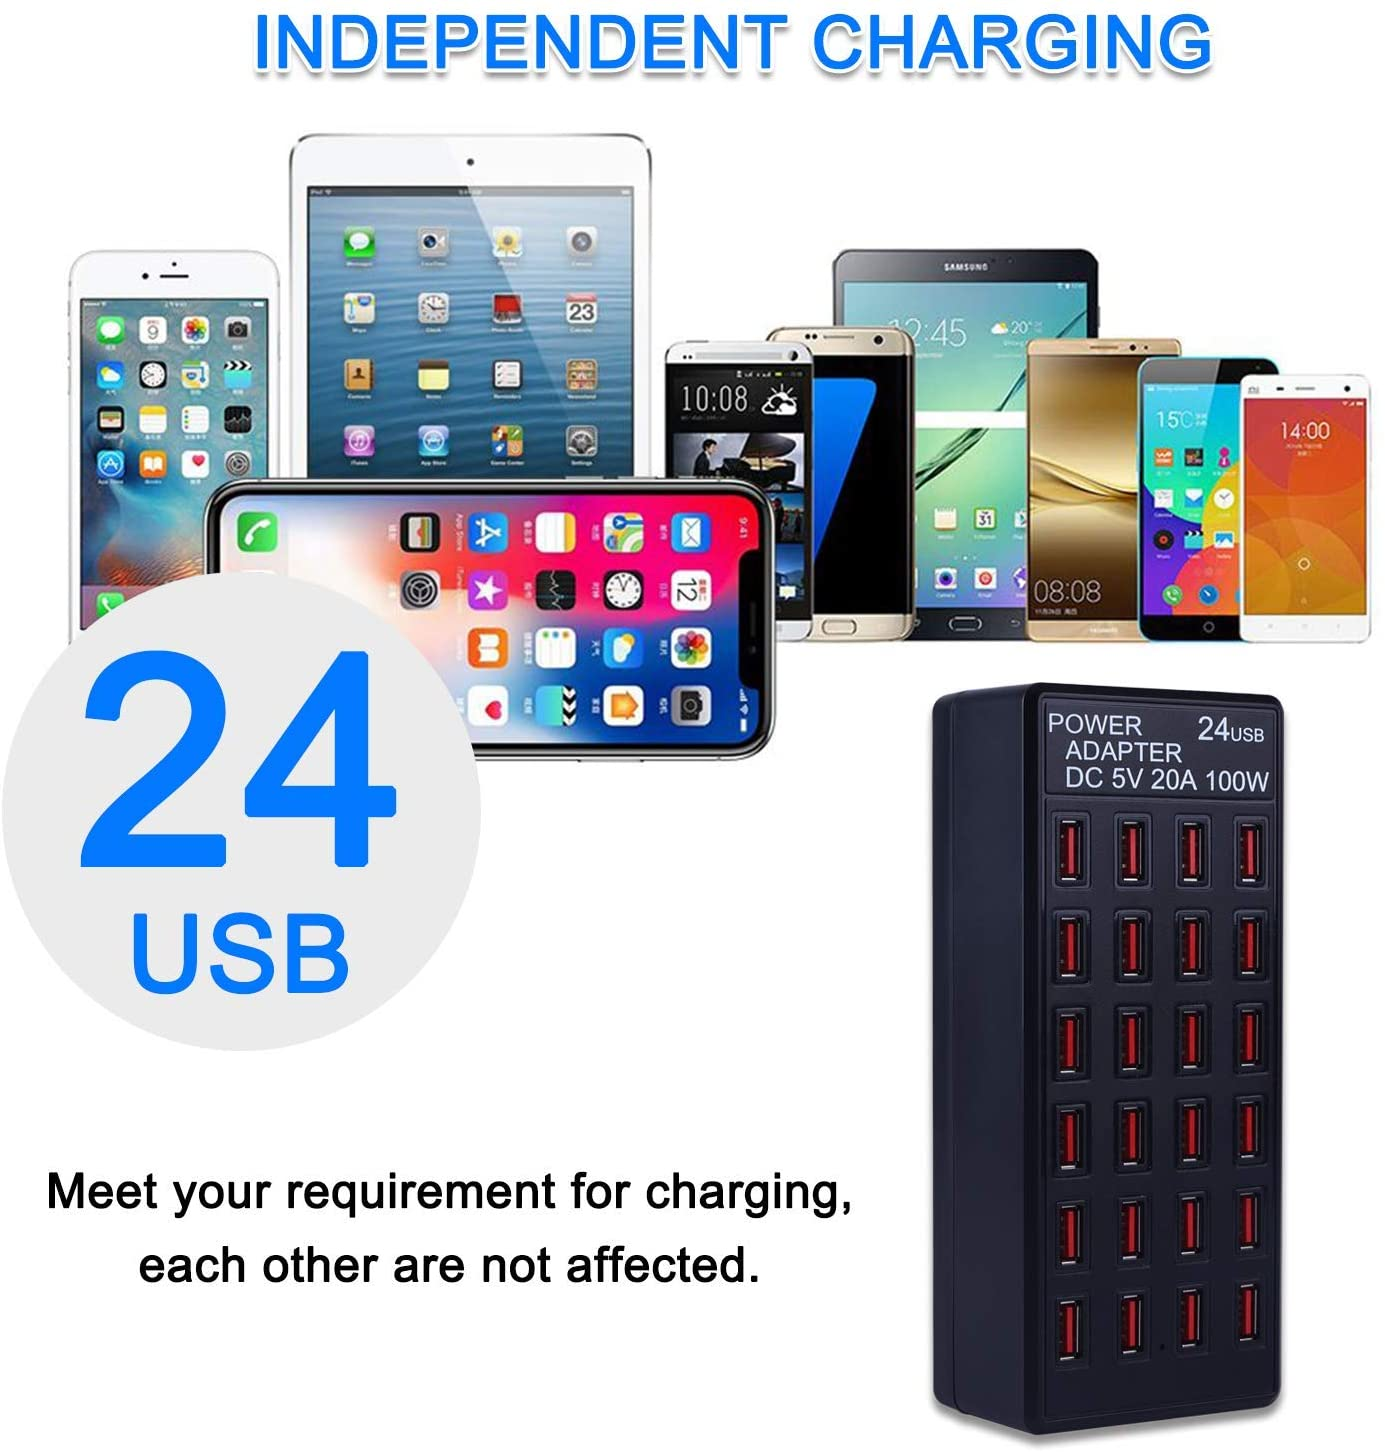 20A and More Devices,fit School,mall,Hotel,Shop 100w 24 Port USB Fast Charging Station,Travel Desktop USB Rapid Charger,Multi Ports Charging Station Organizer Compatible with Smartphones,Tables